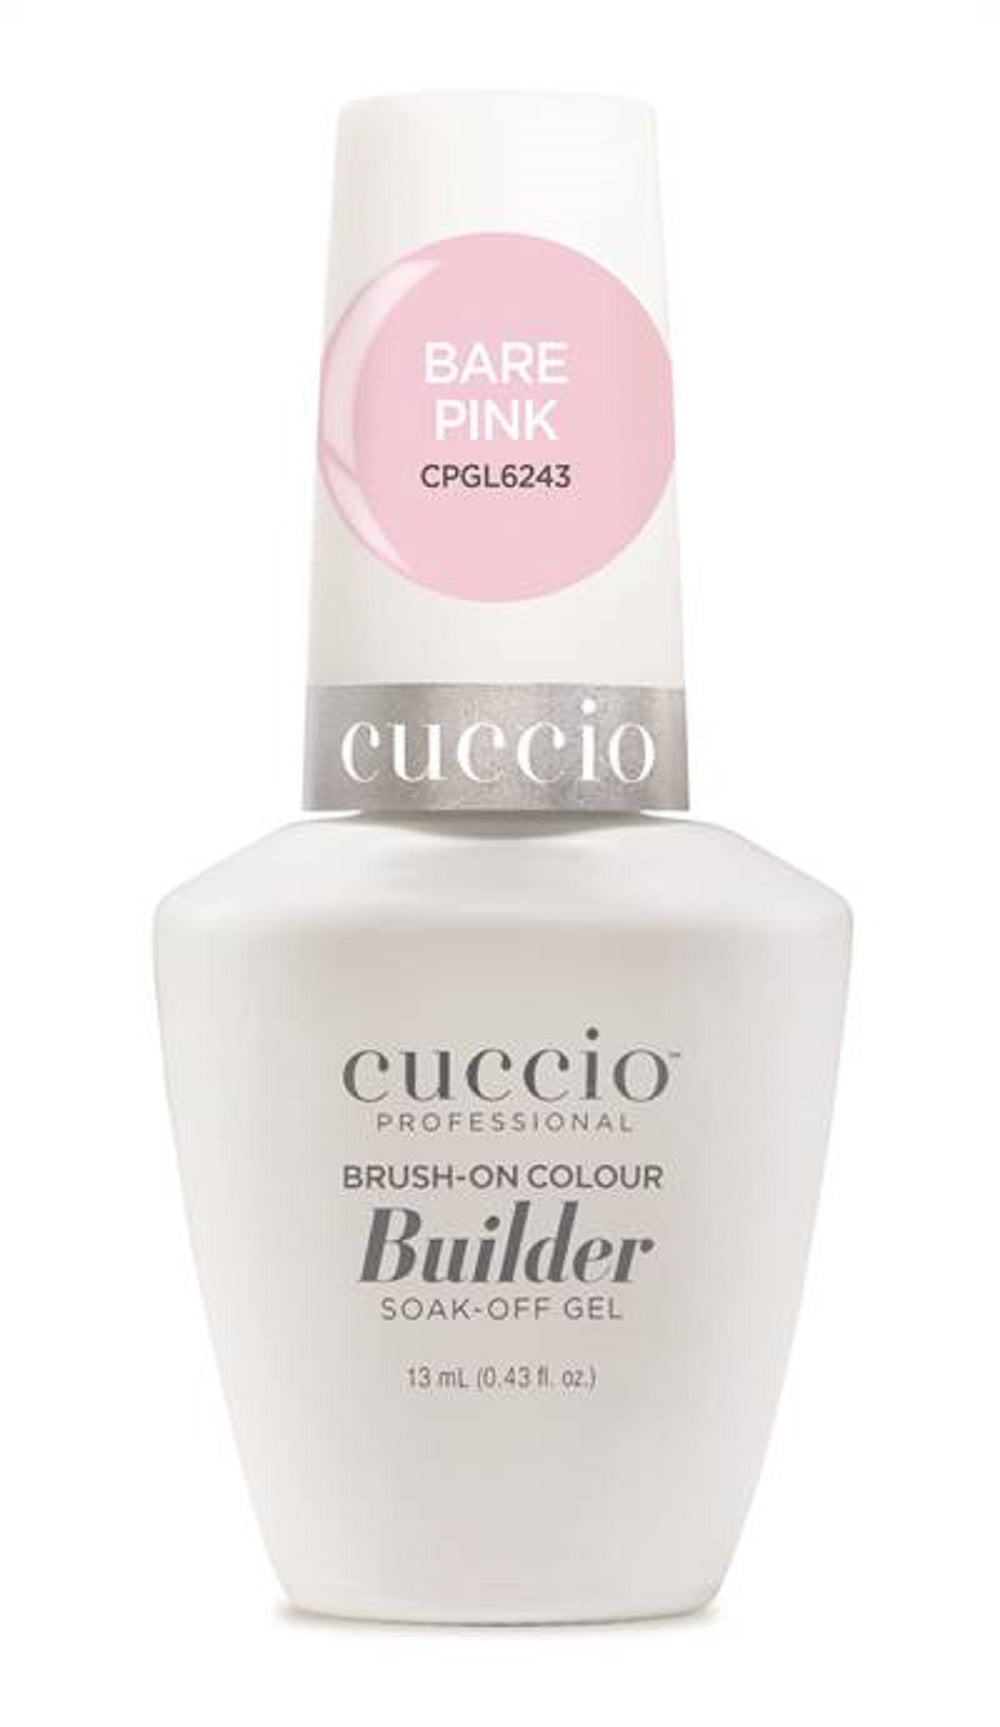 Cuccio Professional Brush-On Gel Colour Builder Soak-Off Bare Pink  Gel 13 m